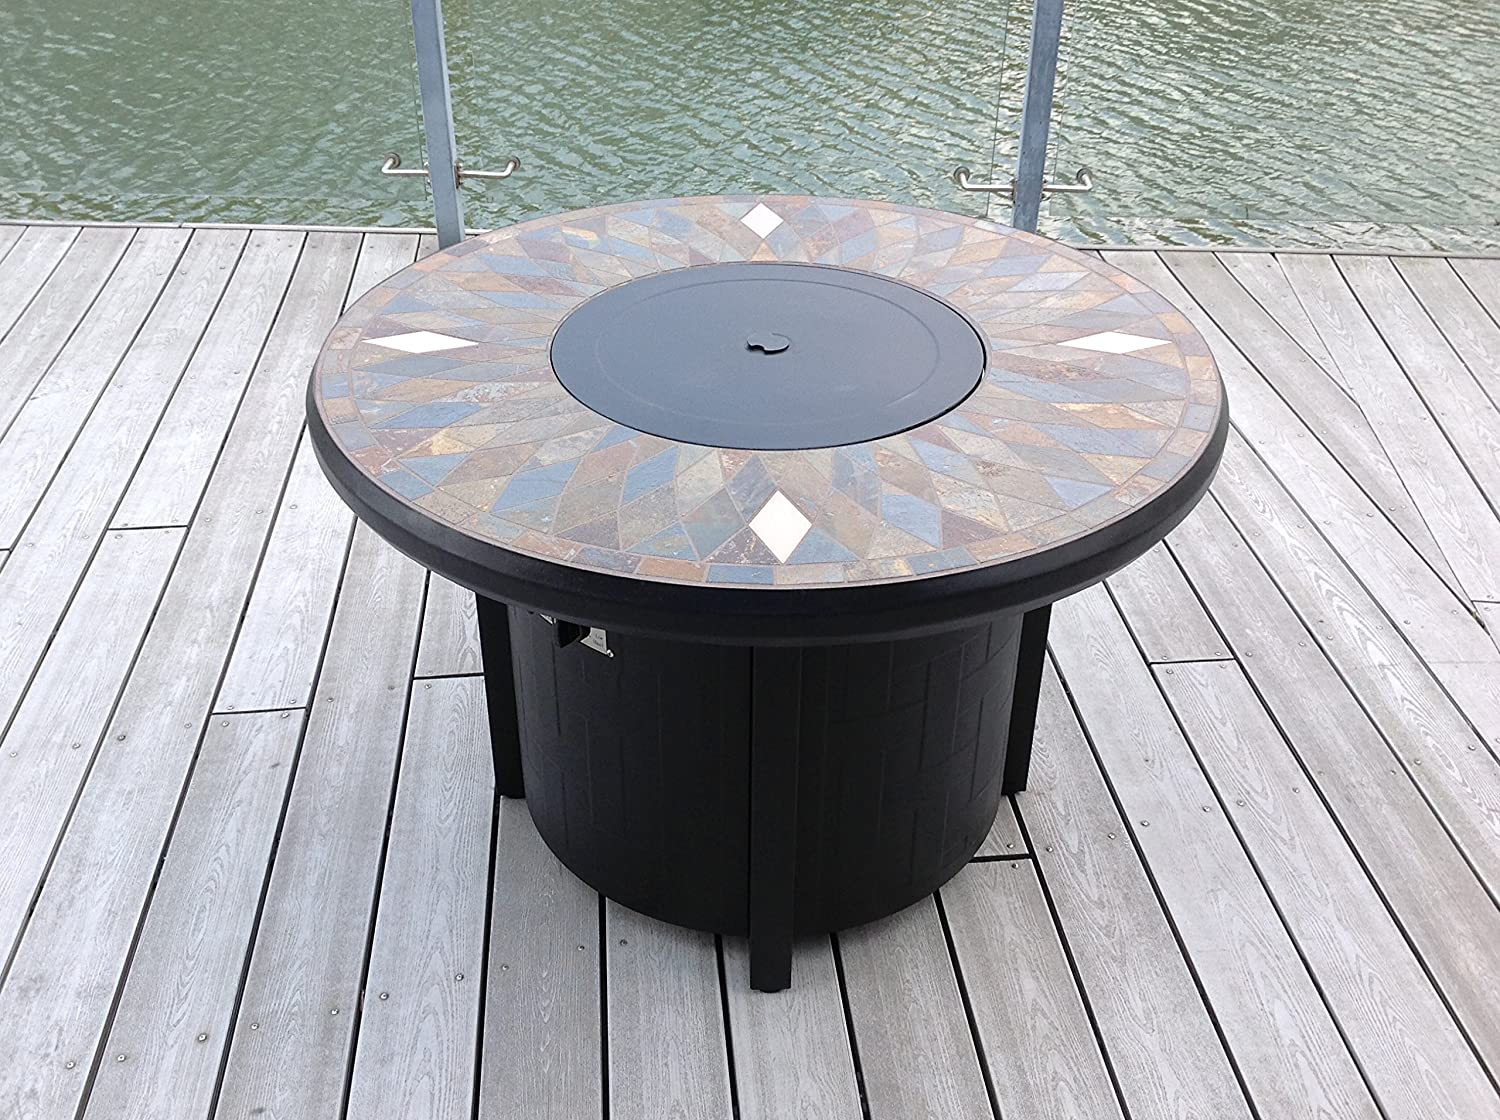 Pebble Lane Living 42 Natural Slate and Copper Top Outdoor Round Propane Fire Pit Table- Bronze